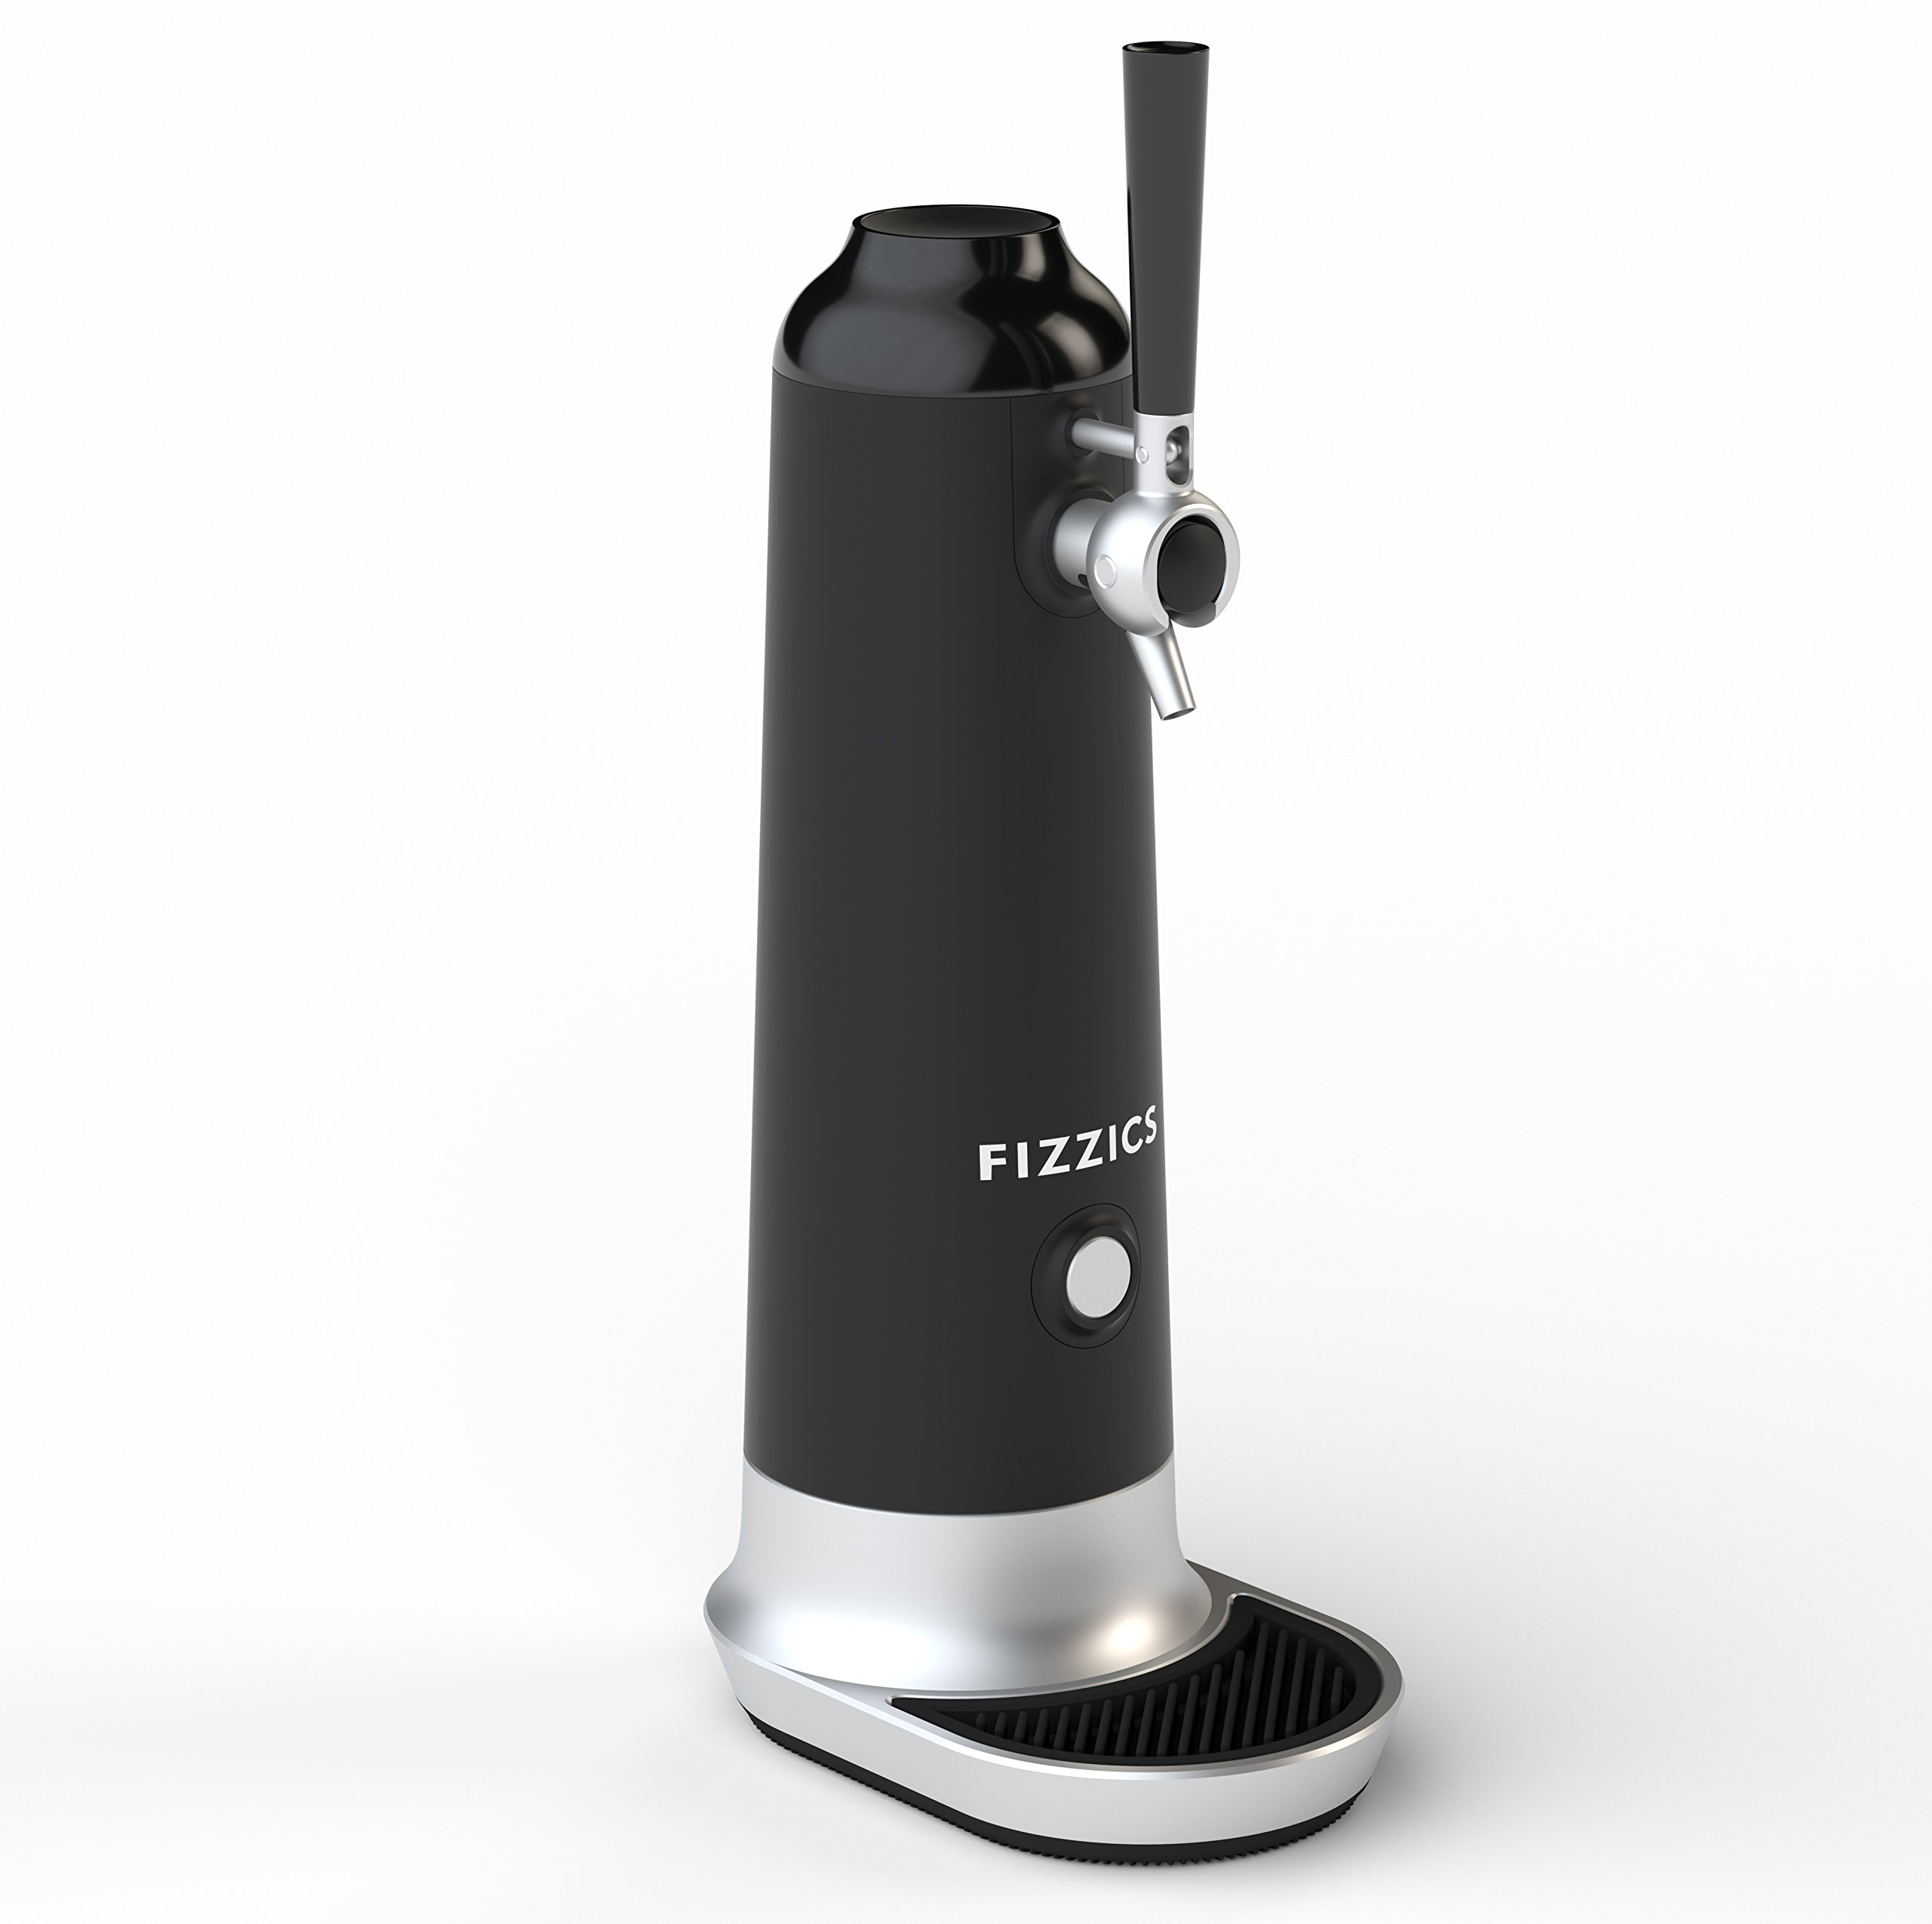 Fizzics Waytap Beer Dispenser, Black by Fizzics (Image #1)